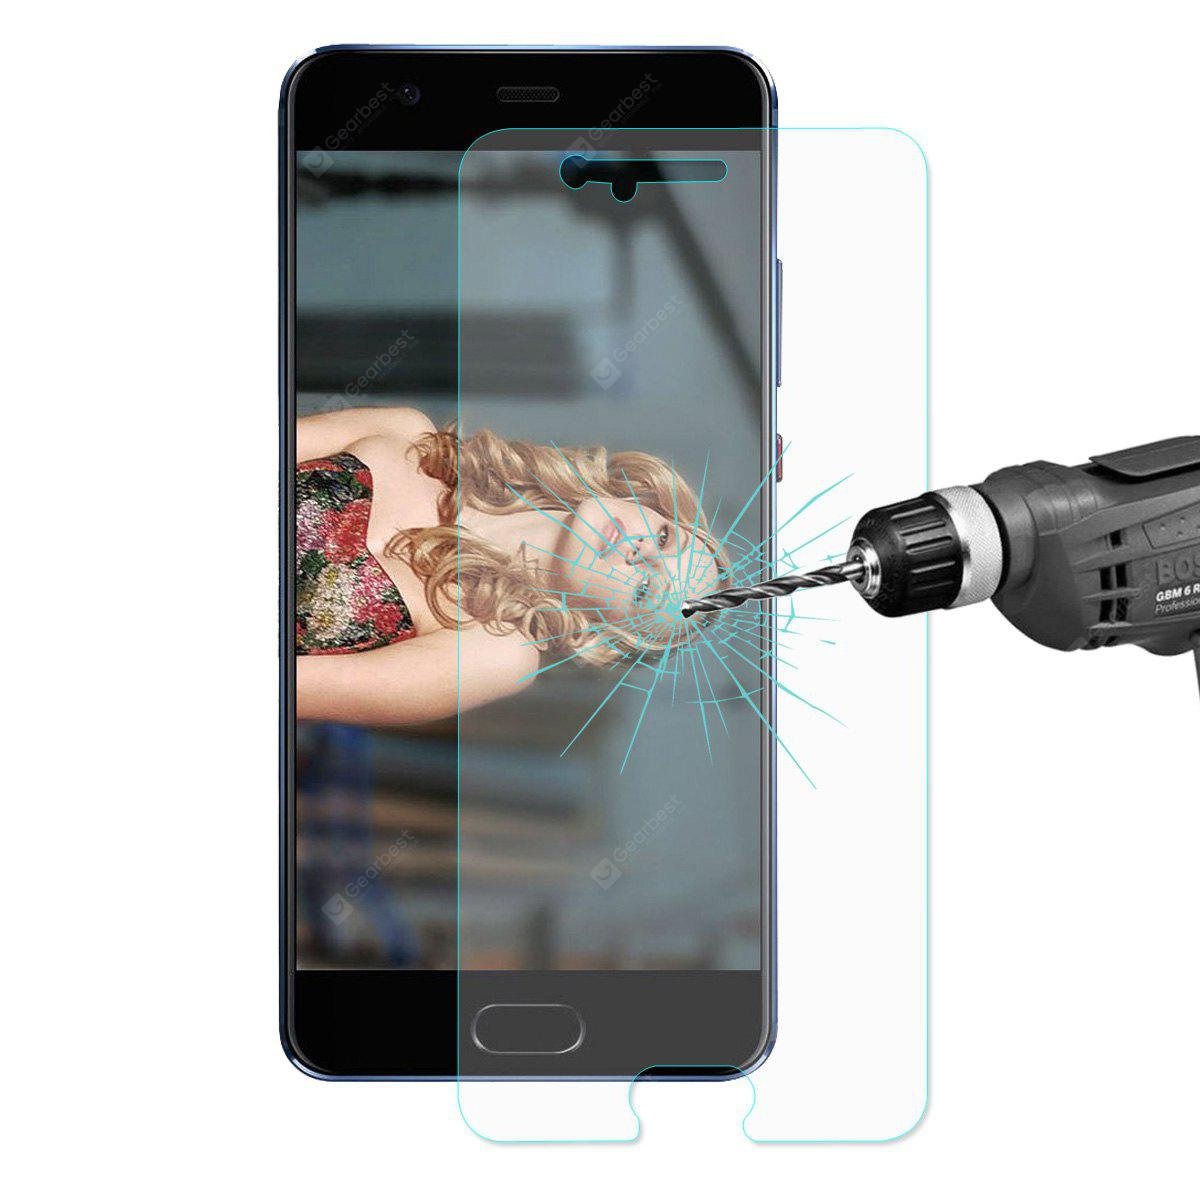 HatPrince 0.26mm Tempered Glass for HUAWEI P10